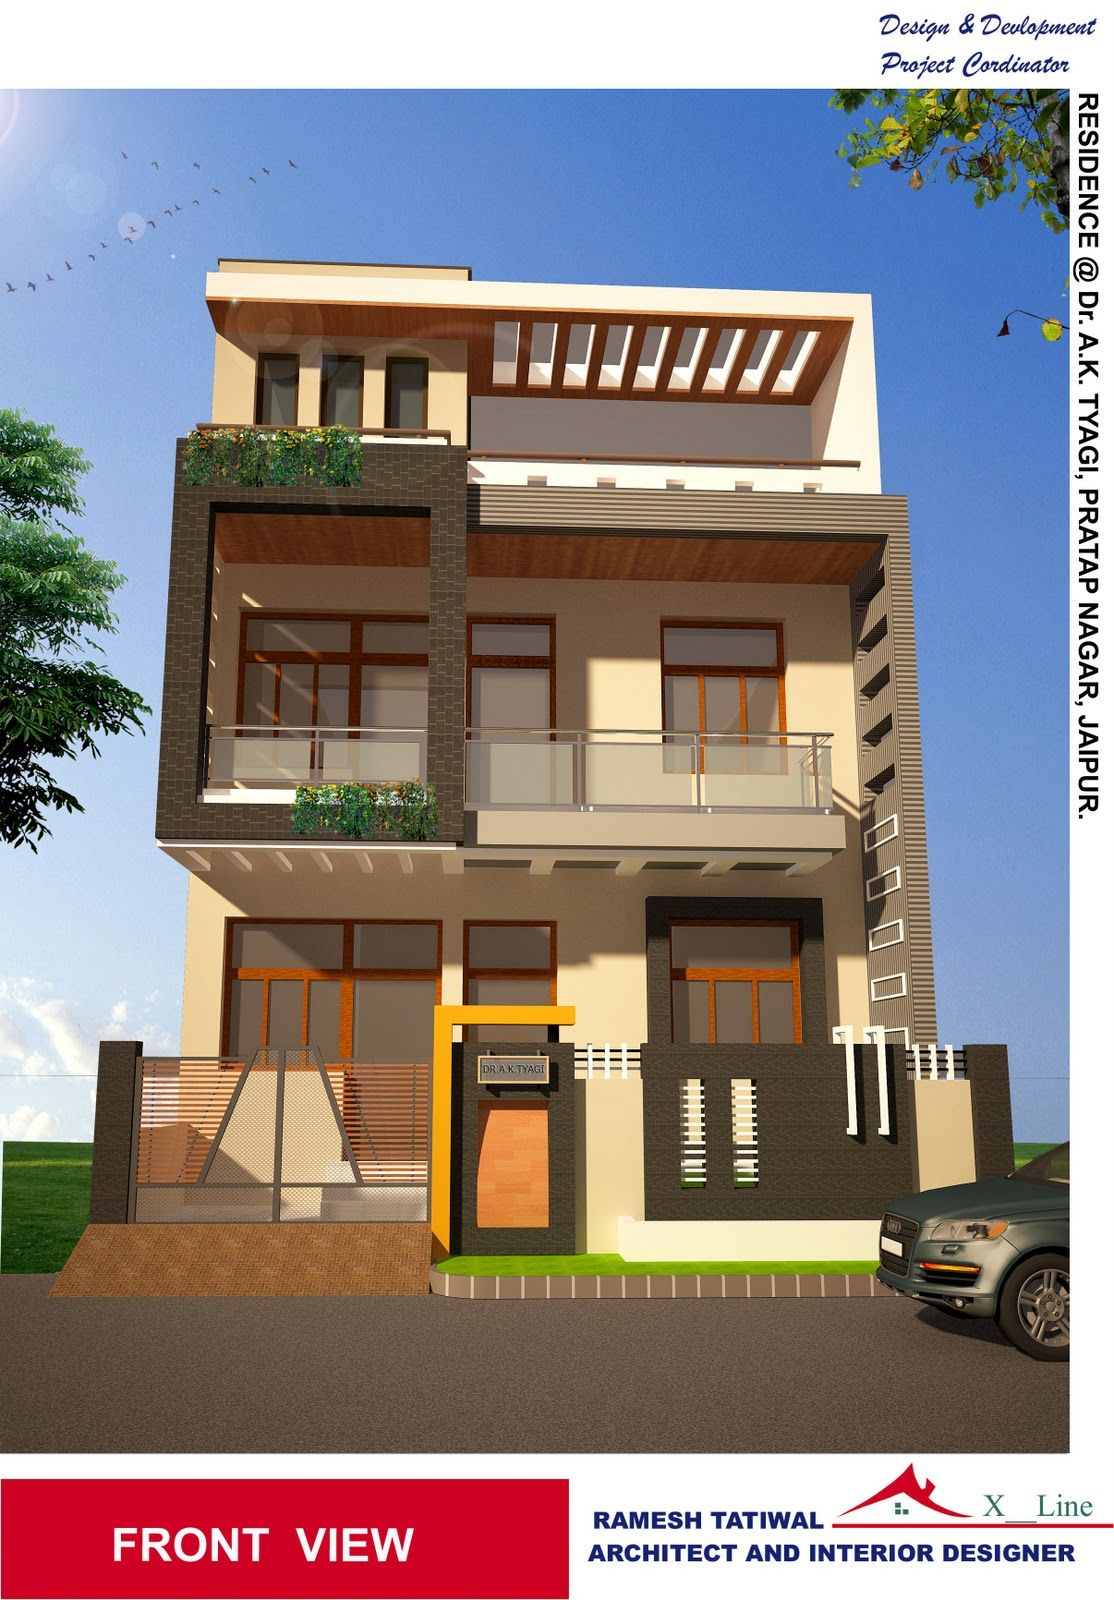 New architectural designs Indian house front design photo